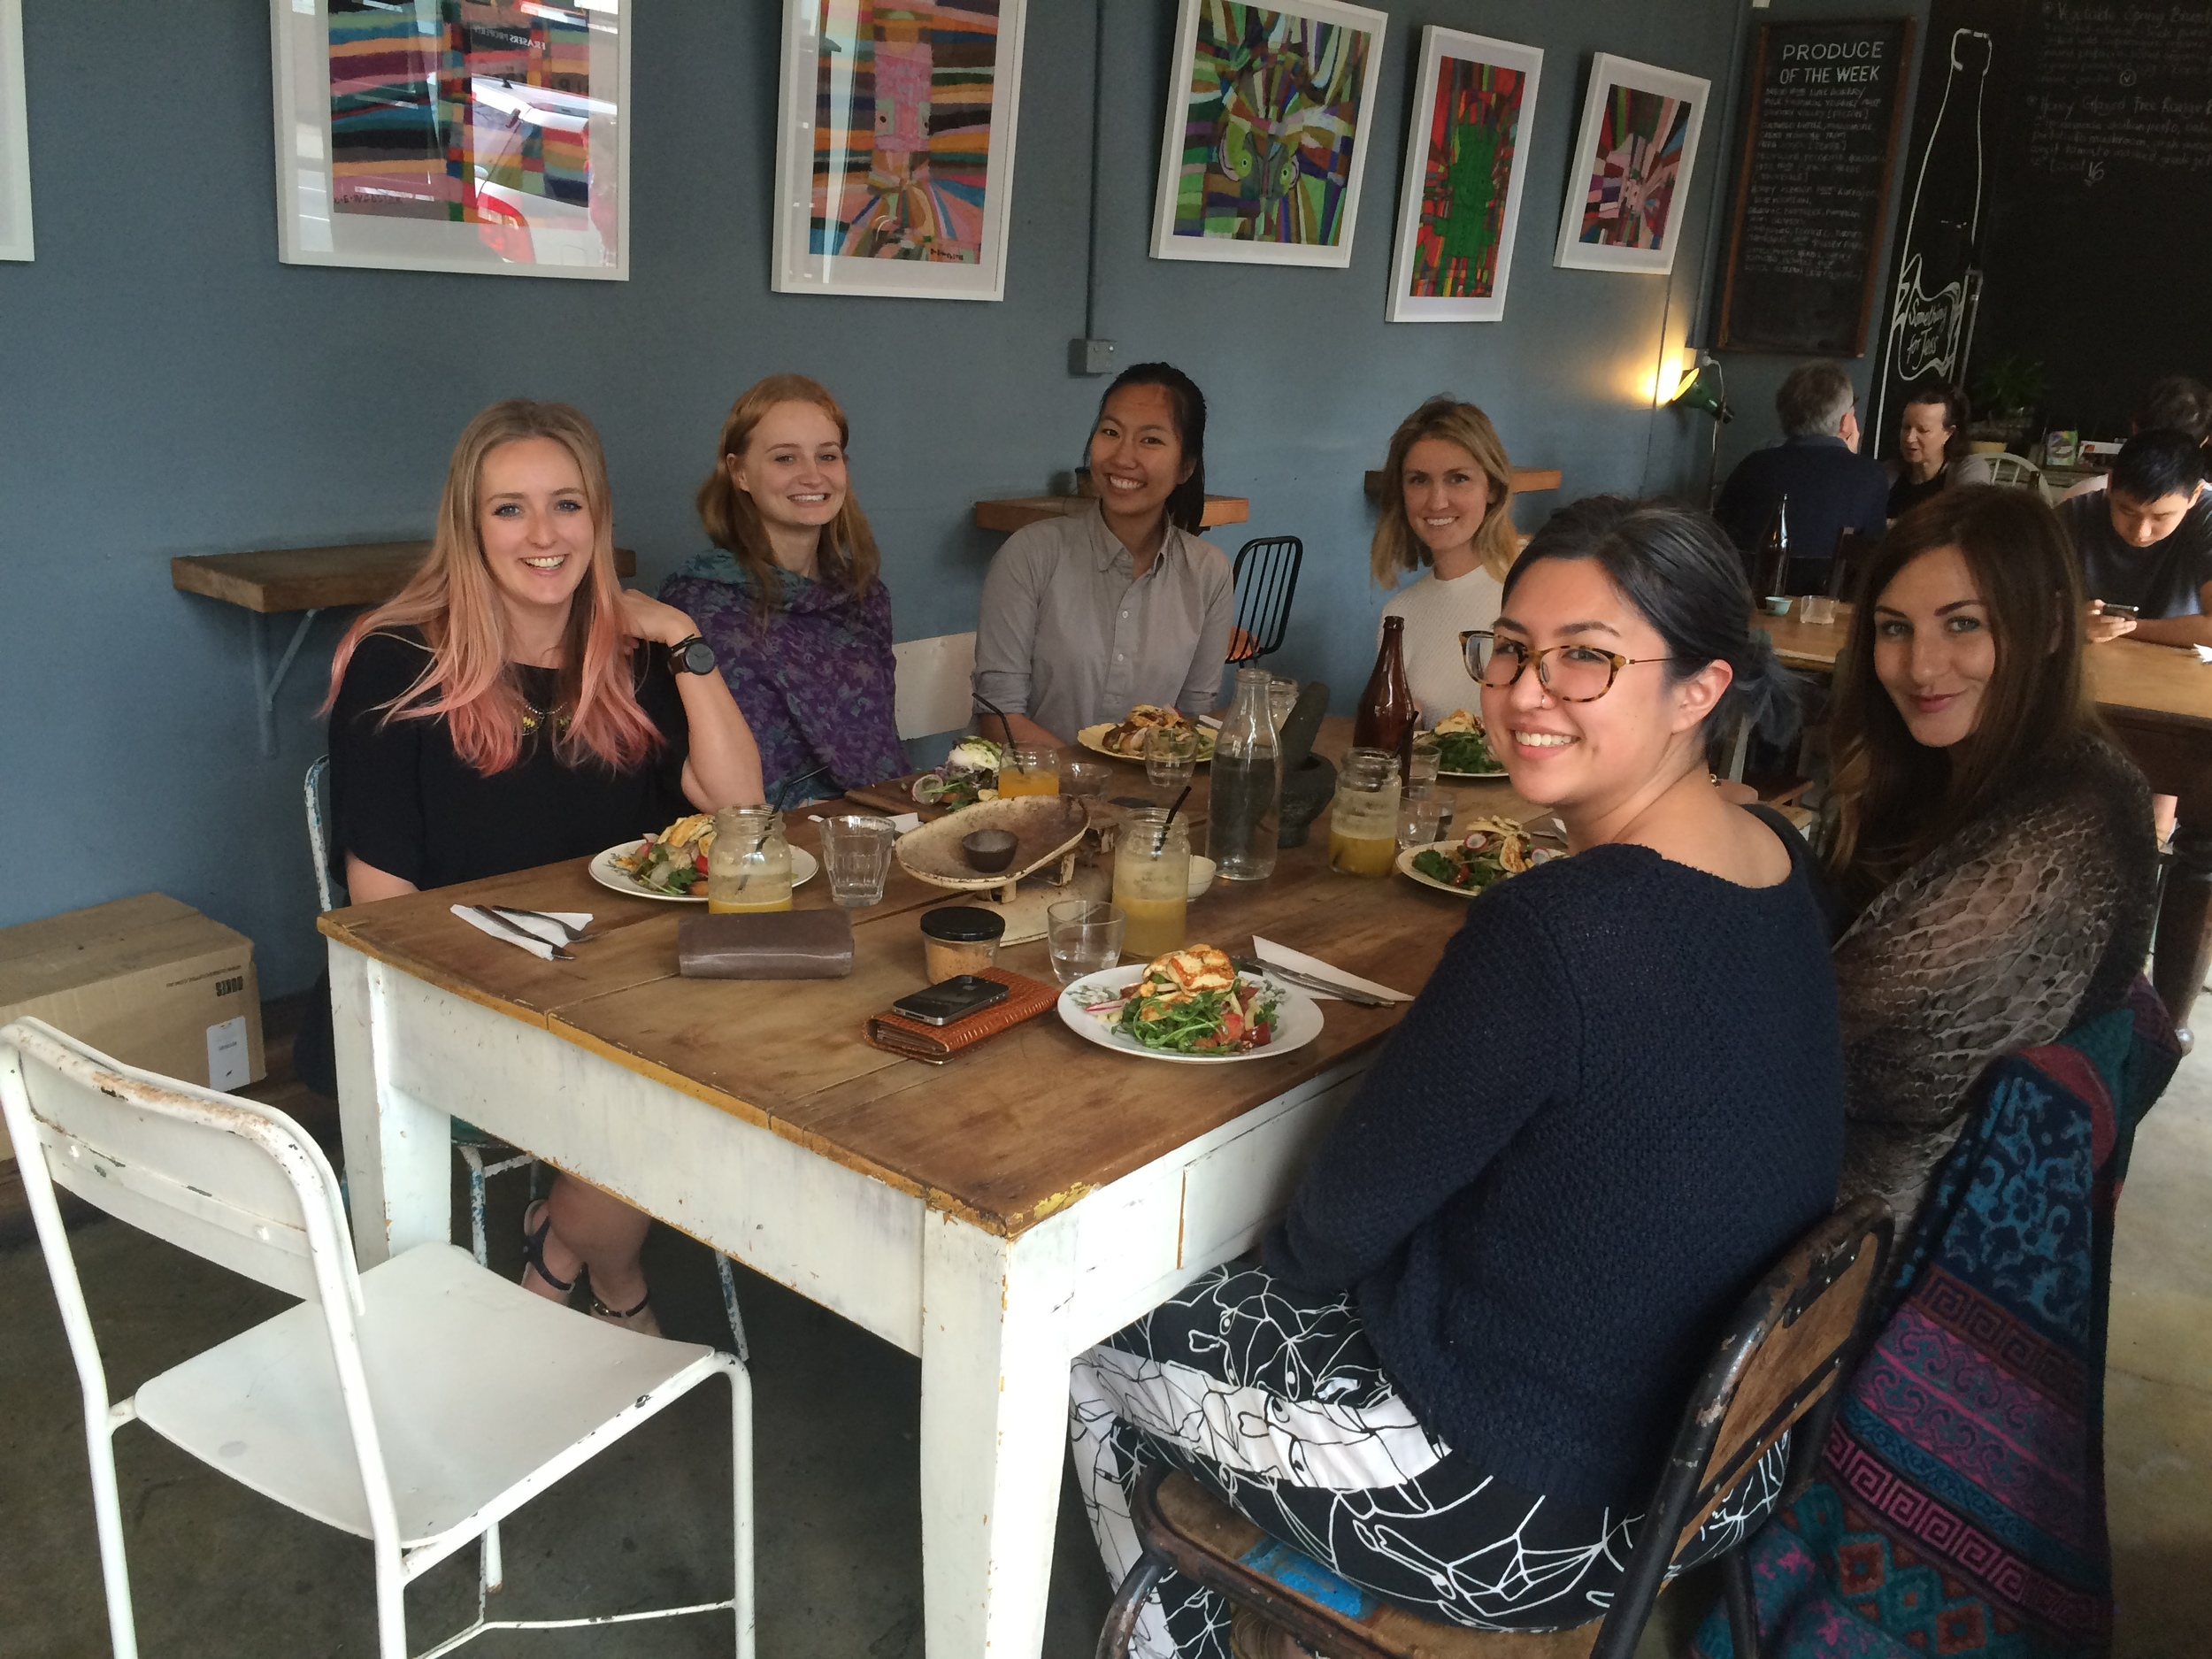 Lunch to welcome our newest graphic designer, Rachel